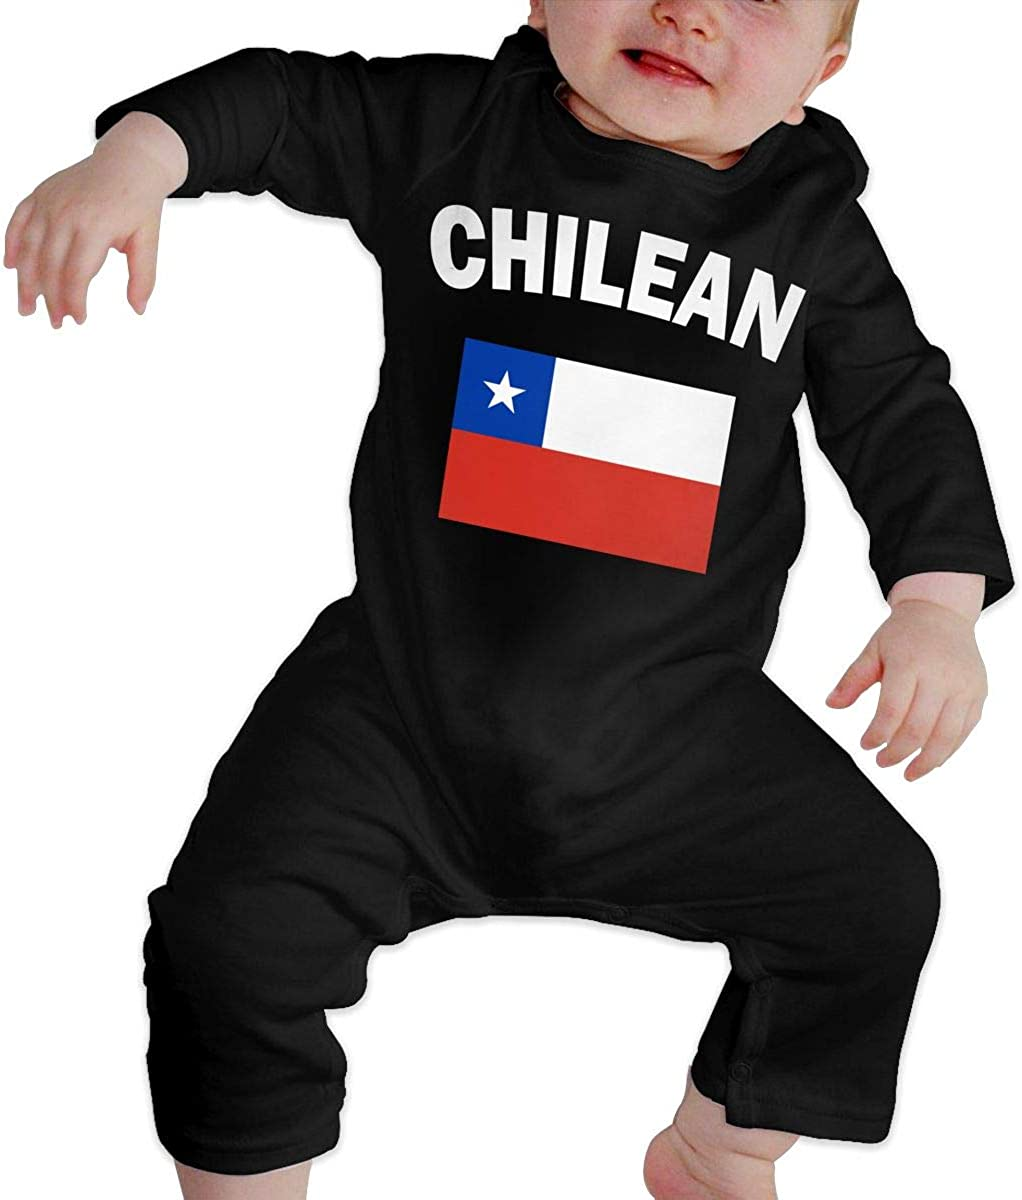 BKNGDG8Q Baby Boys Romper Jumpsuit Chilean Flag-1 Organic One-Piece Bodysuits Coverall Outfits